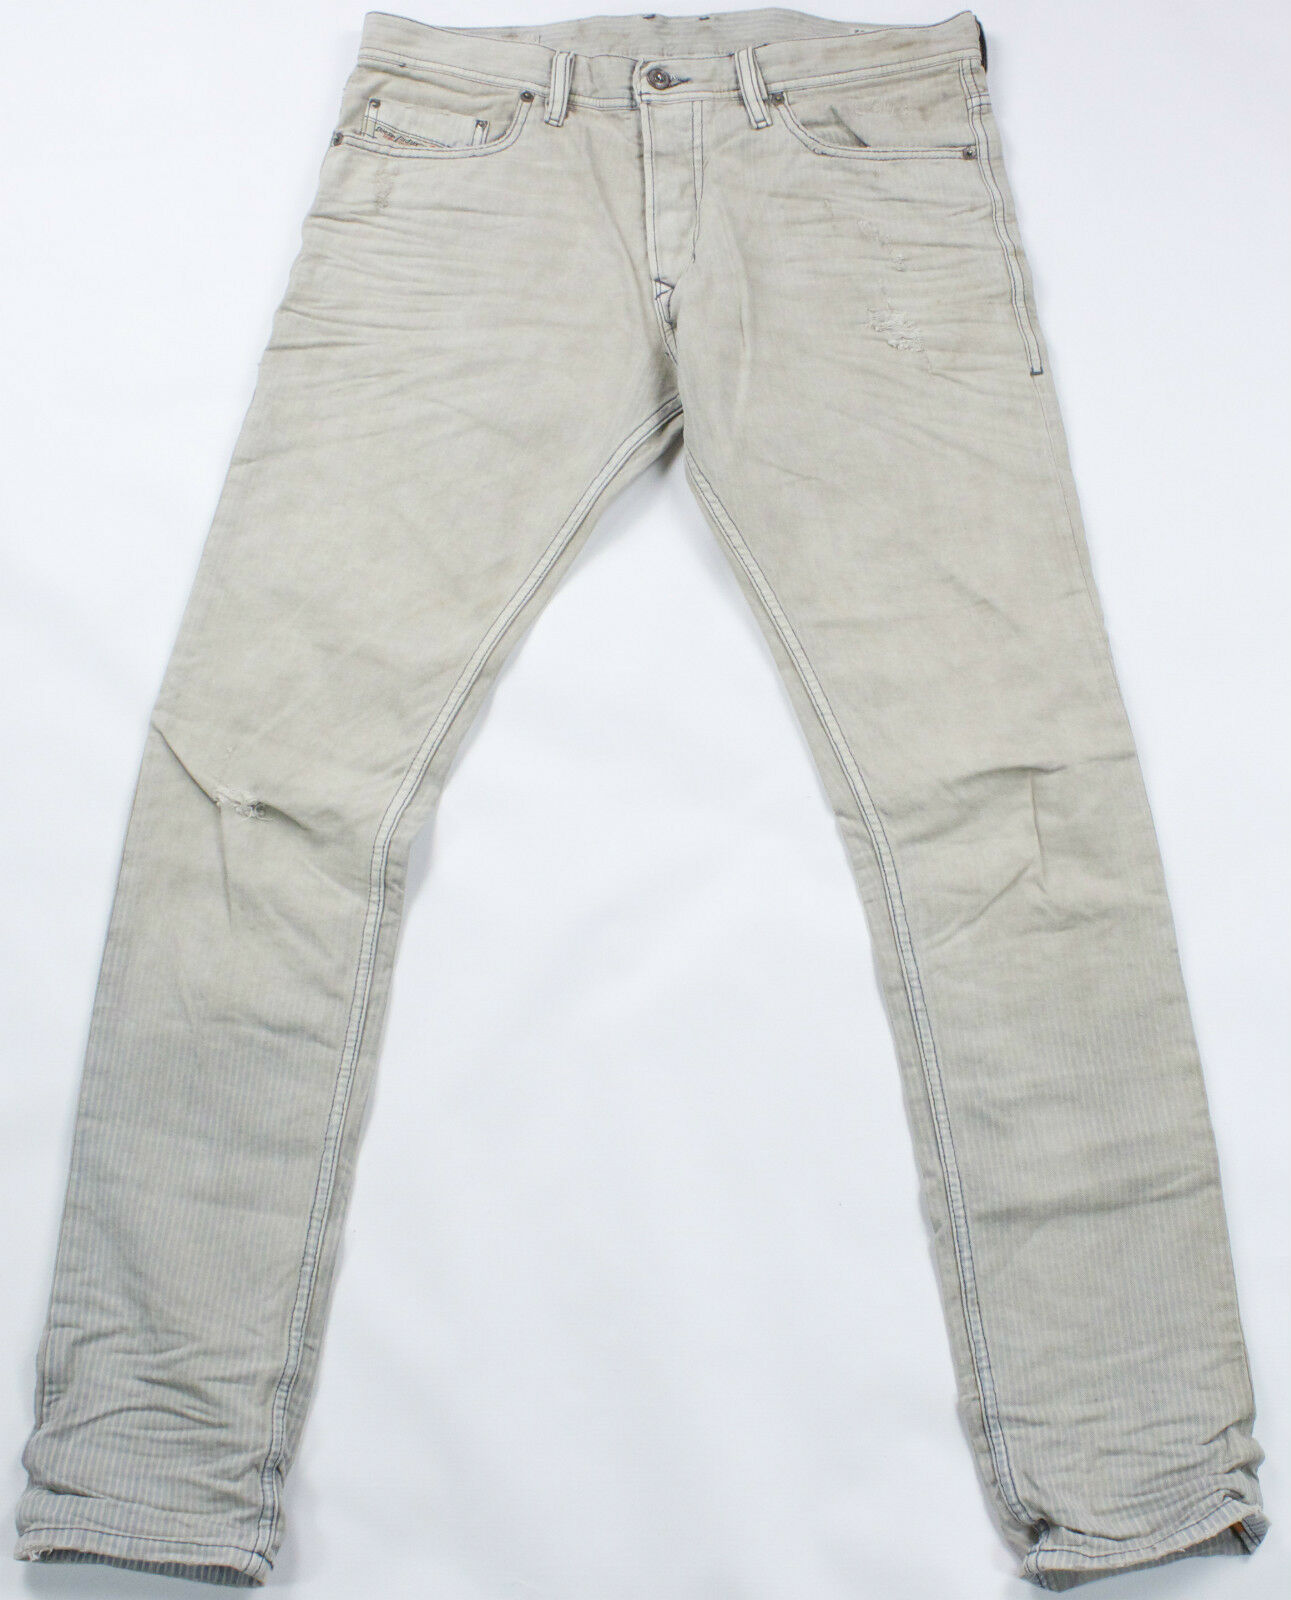 BRAND NEW DIESEL TEPPHAR 008PK JEANS 32X32 100% AUTHENTIC SLIM FIT TAPERED